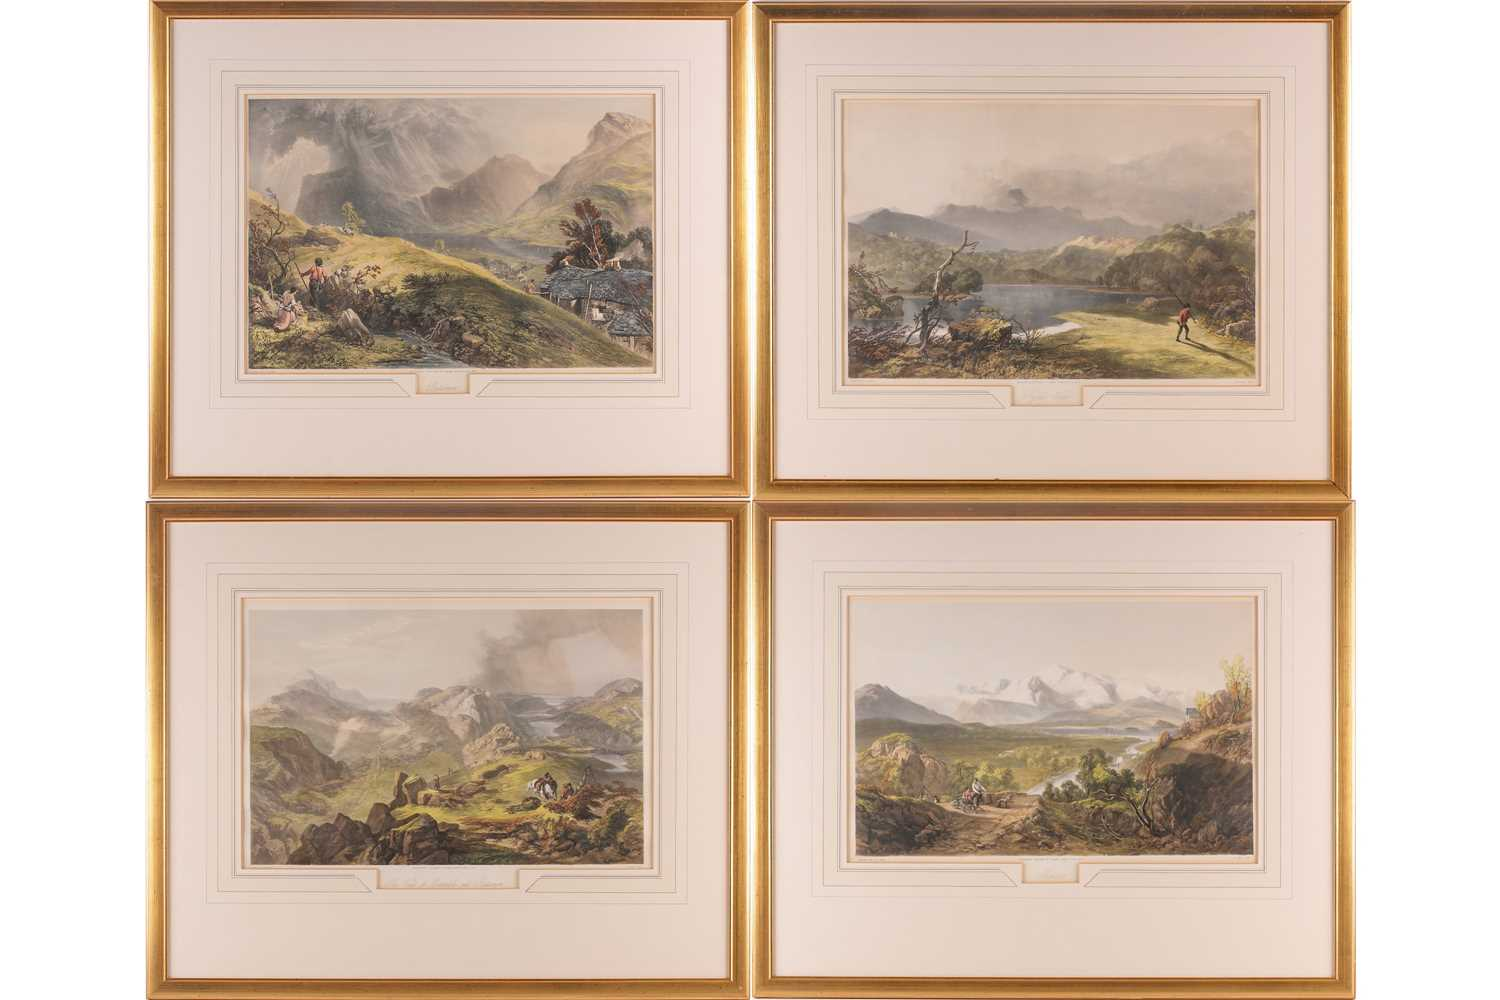 Gauci after J B Pyne, Skiddaw, Buttermere, The Vales of Emmerdale and Buttermere, The Rydal Water,